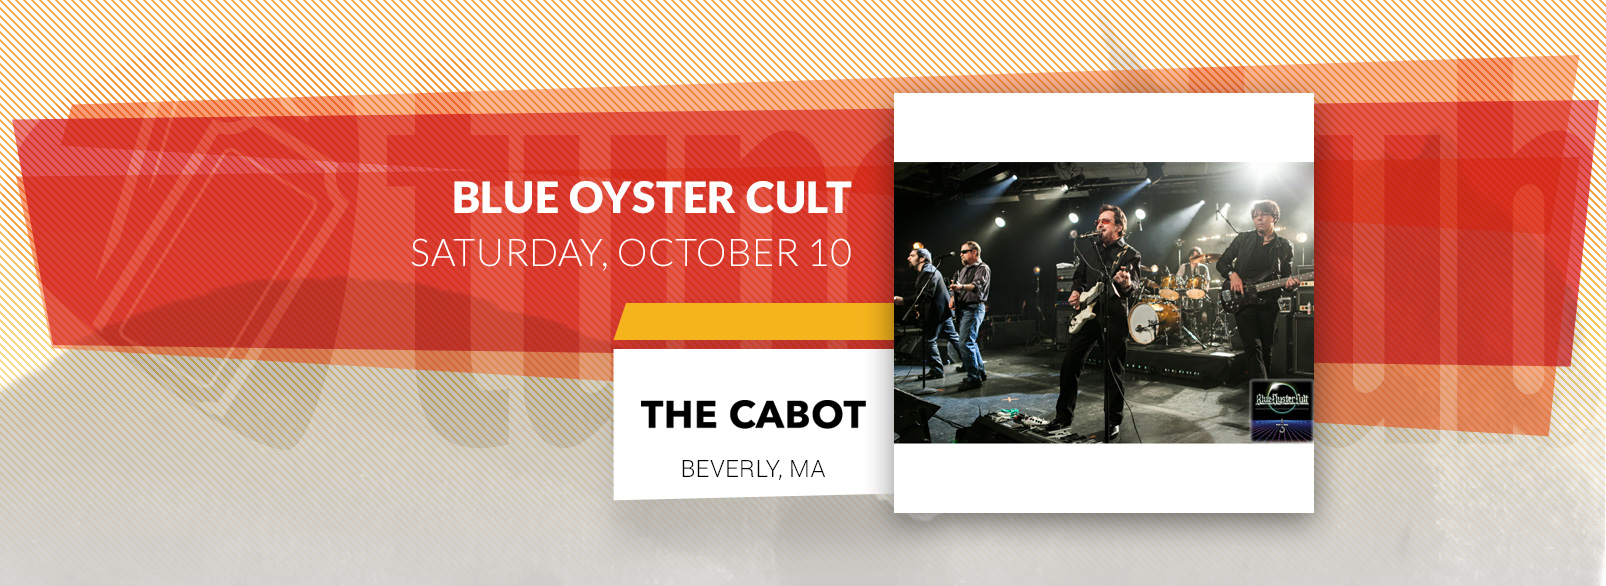 Blue Oyster Cult @ The Cabot